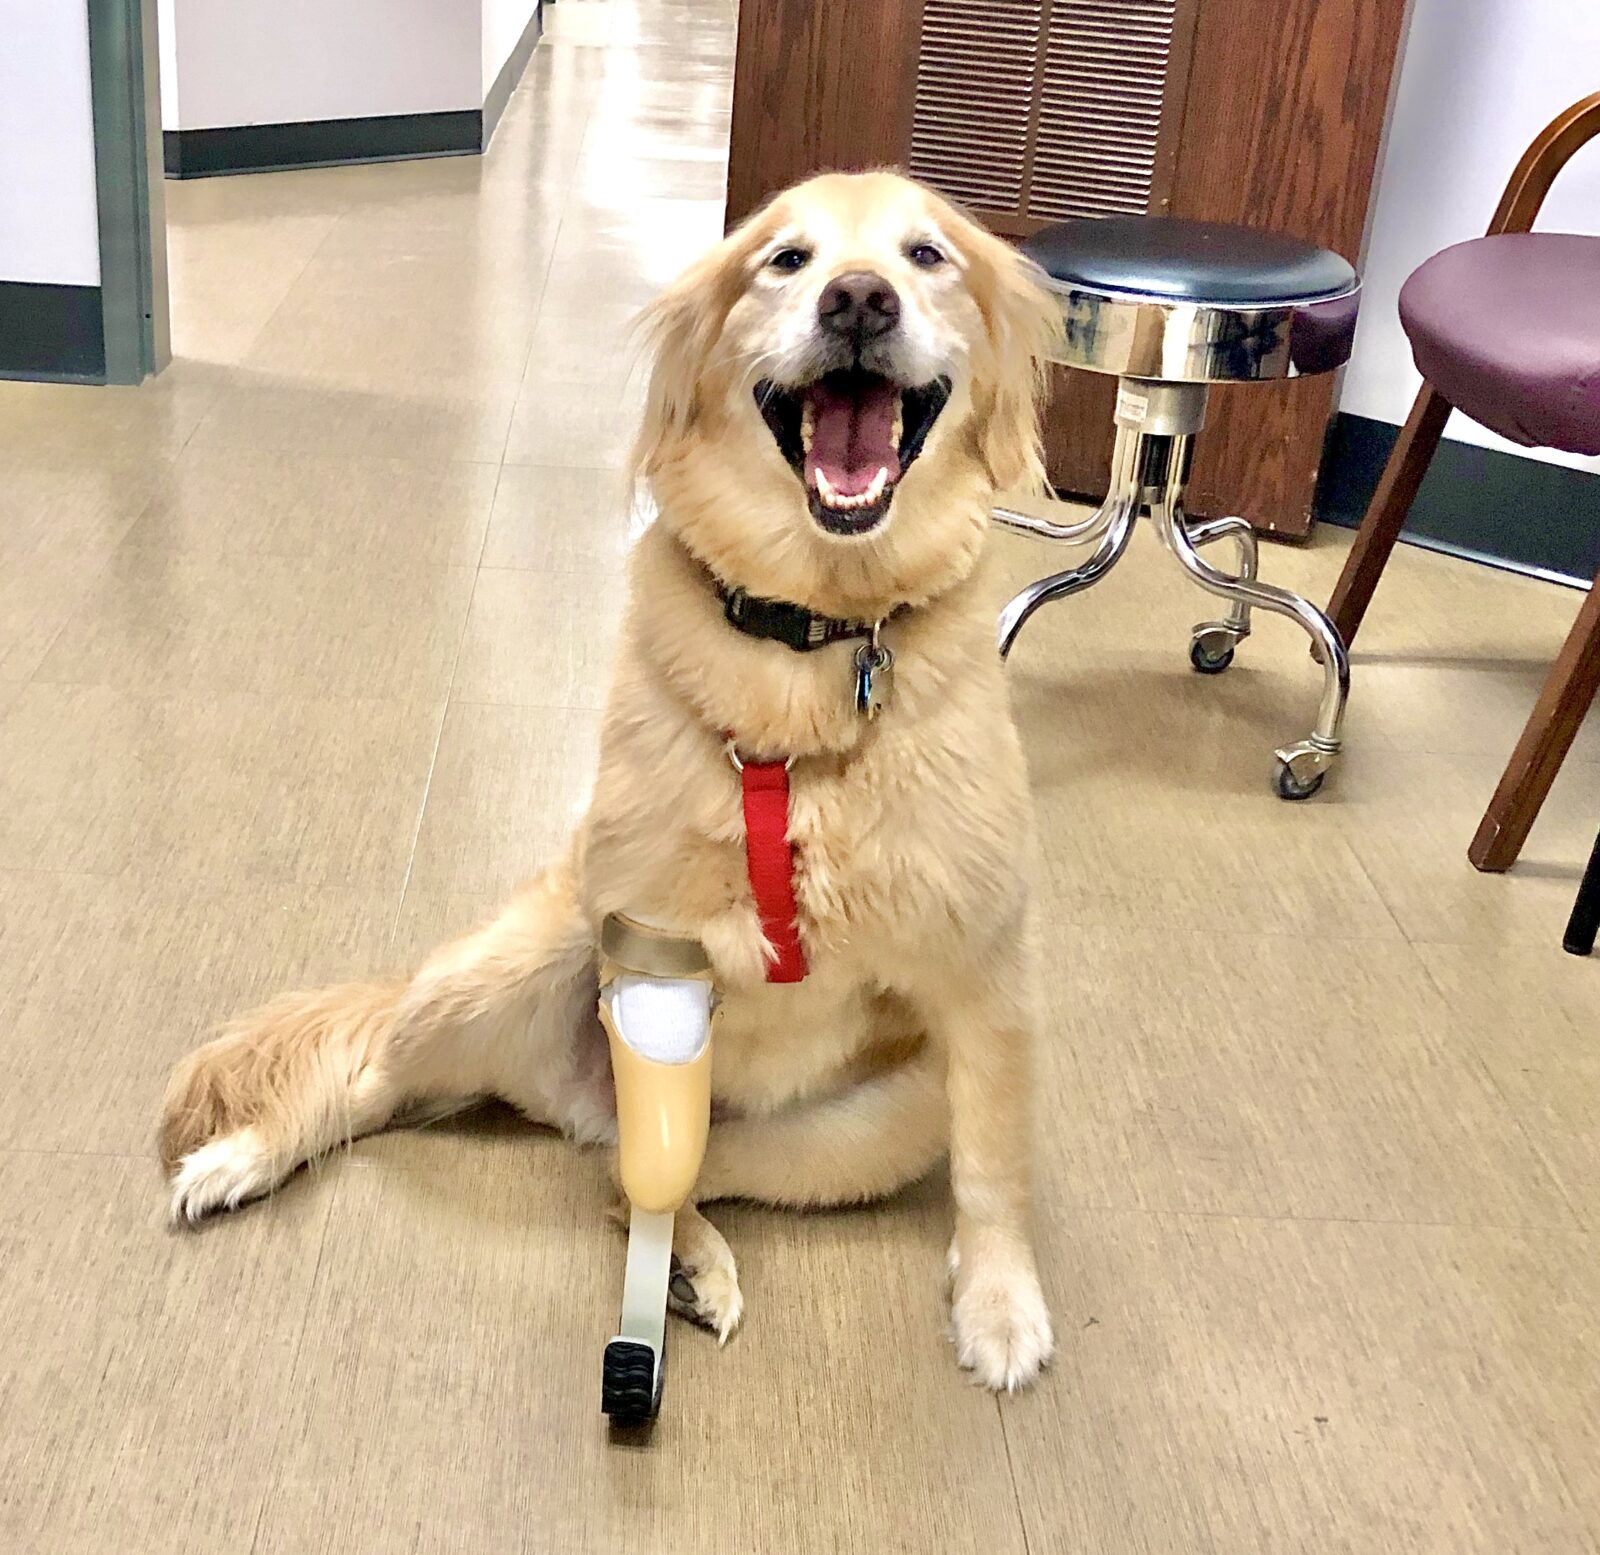 Golden Retriever with prosthetic leg